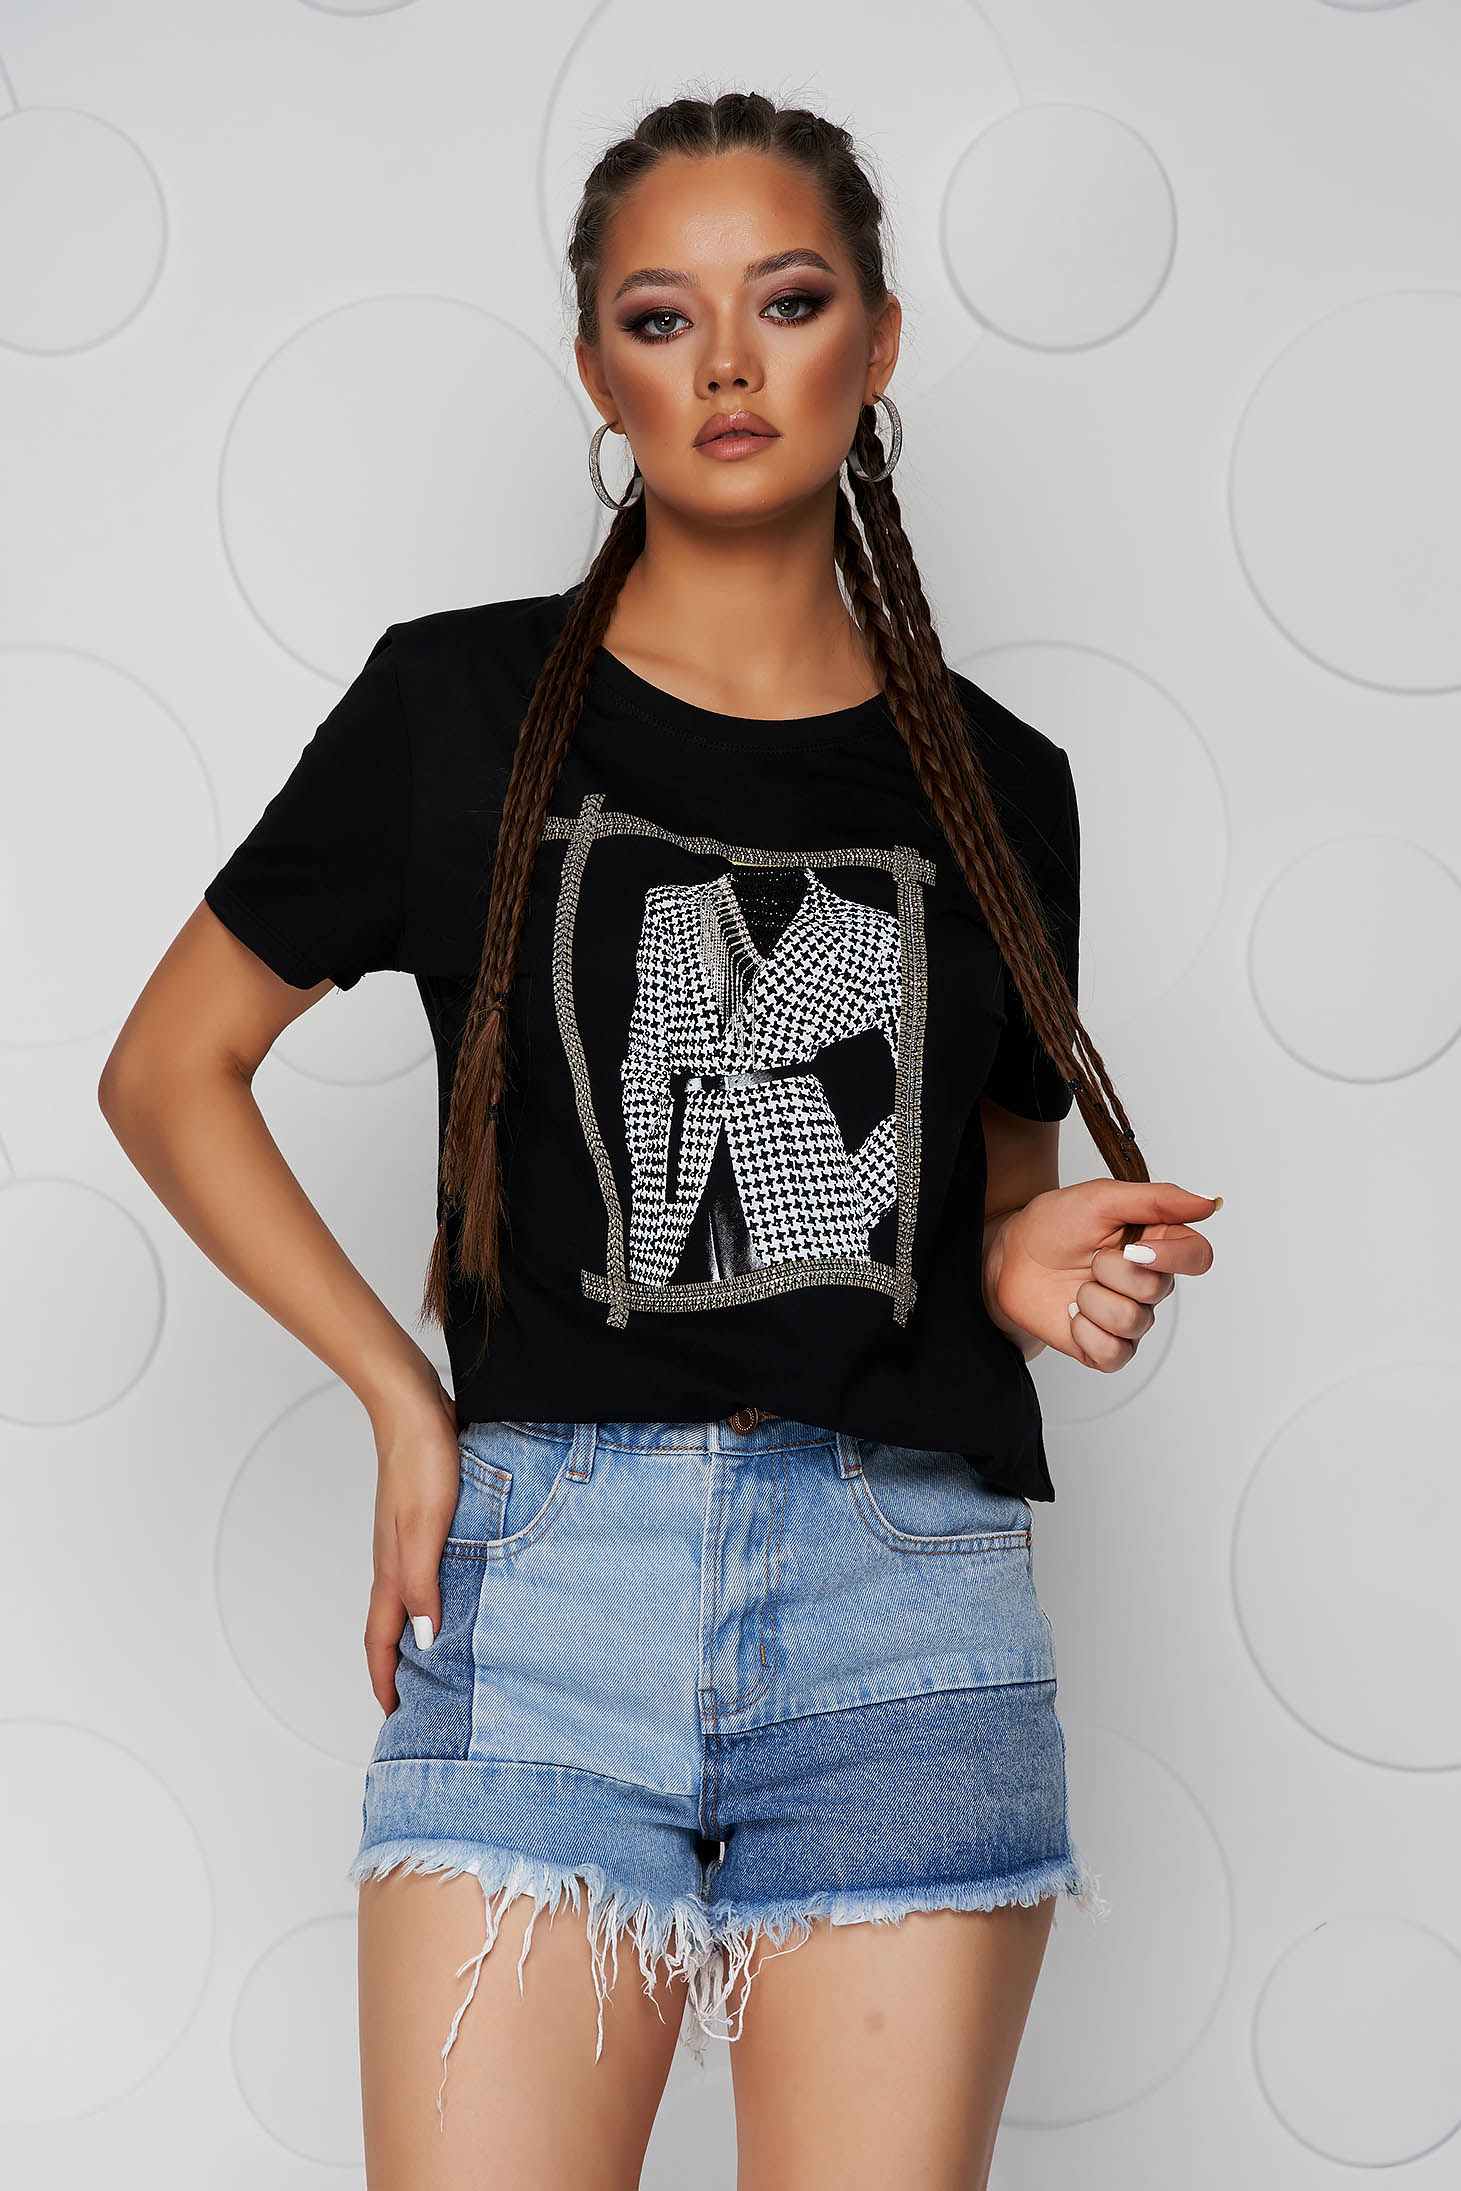 Black t-shirt cotton loose fit with rounded cleavage with graphic details